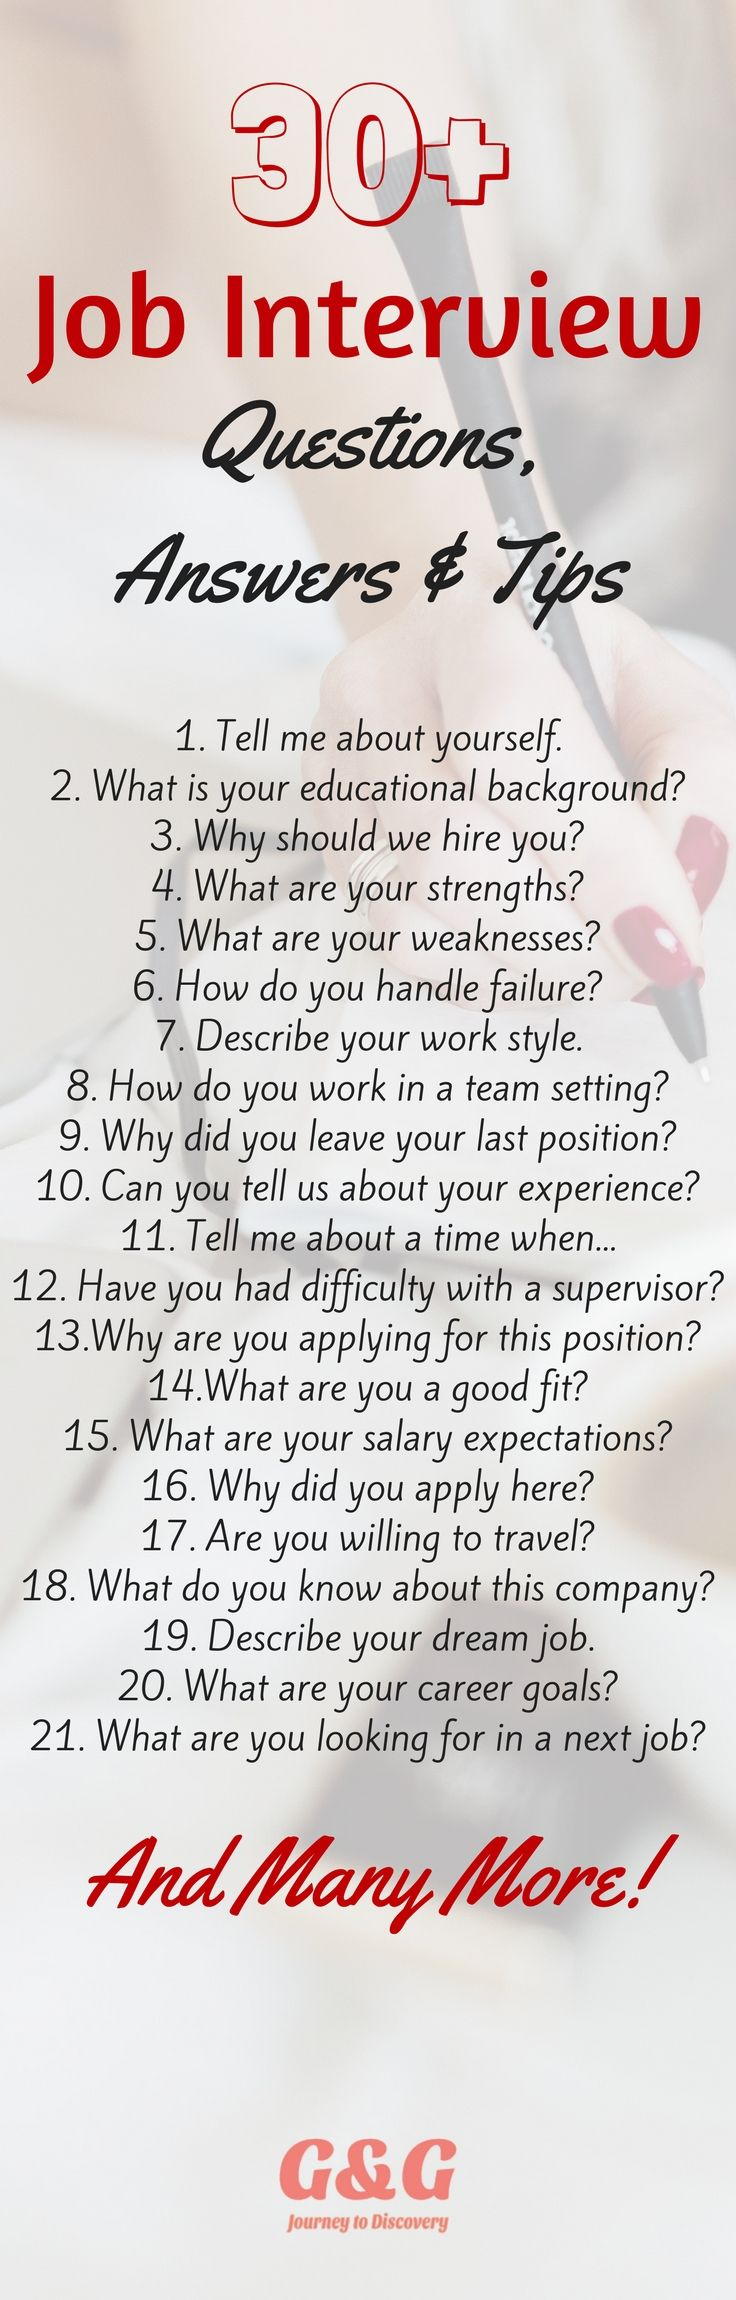 Job interview tips that will help you land your dream job